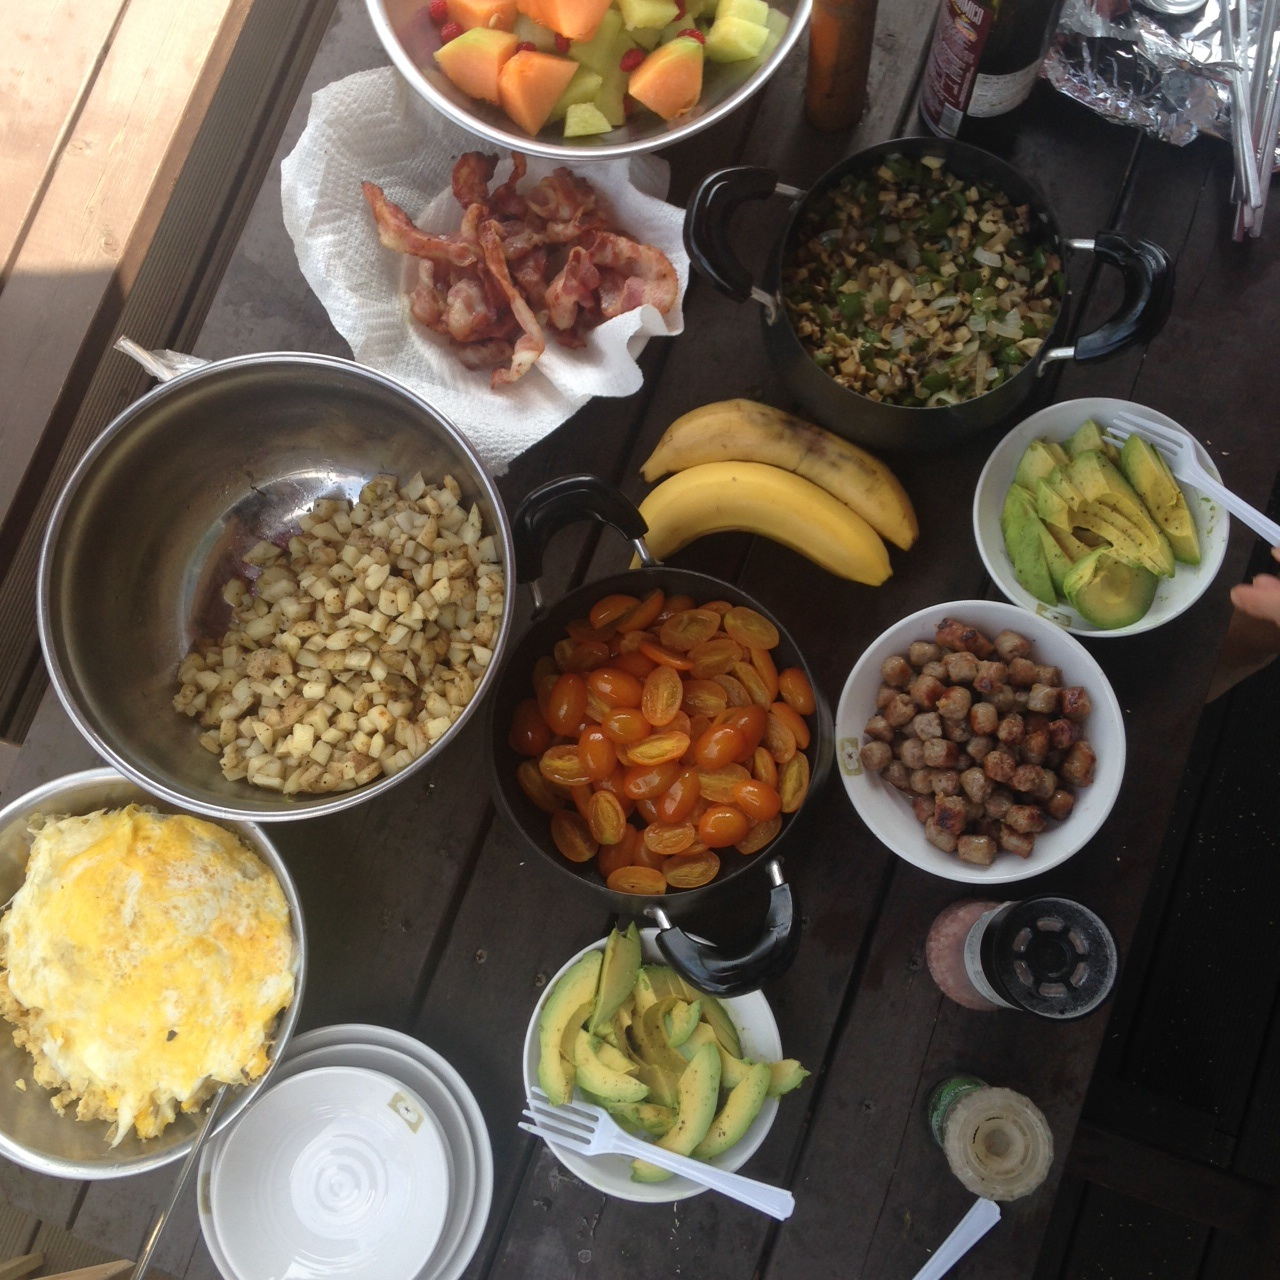 A Whole30-approved brunch feast on vacation: scrambled eggs, avocados, grilled tomatoes, sausages, grilled vegetable medley, home fries, fruit salad, bacon